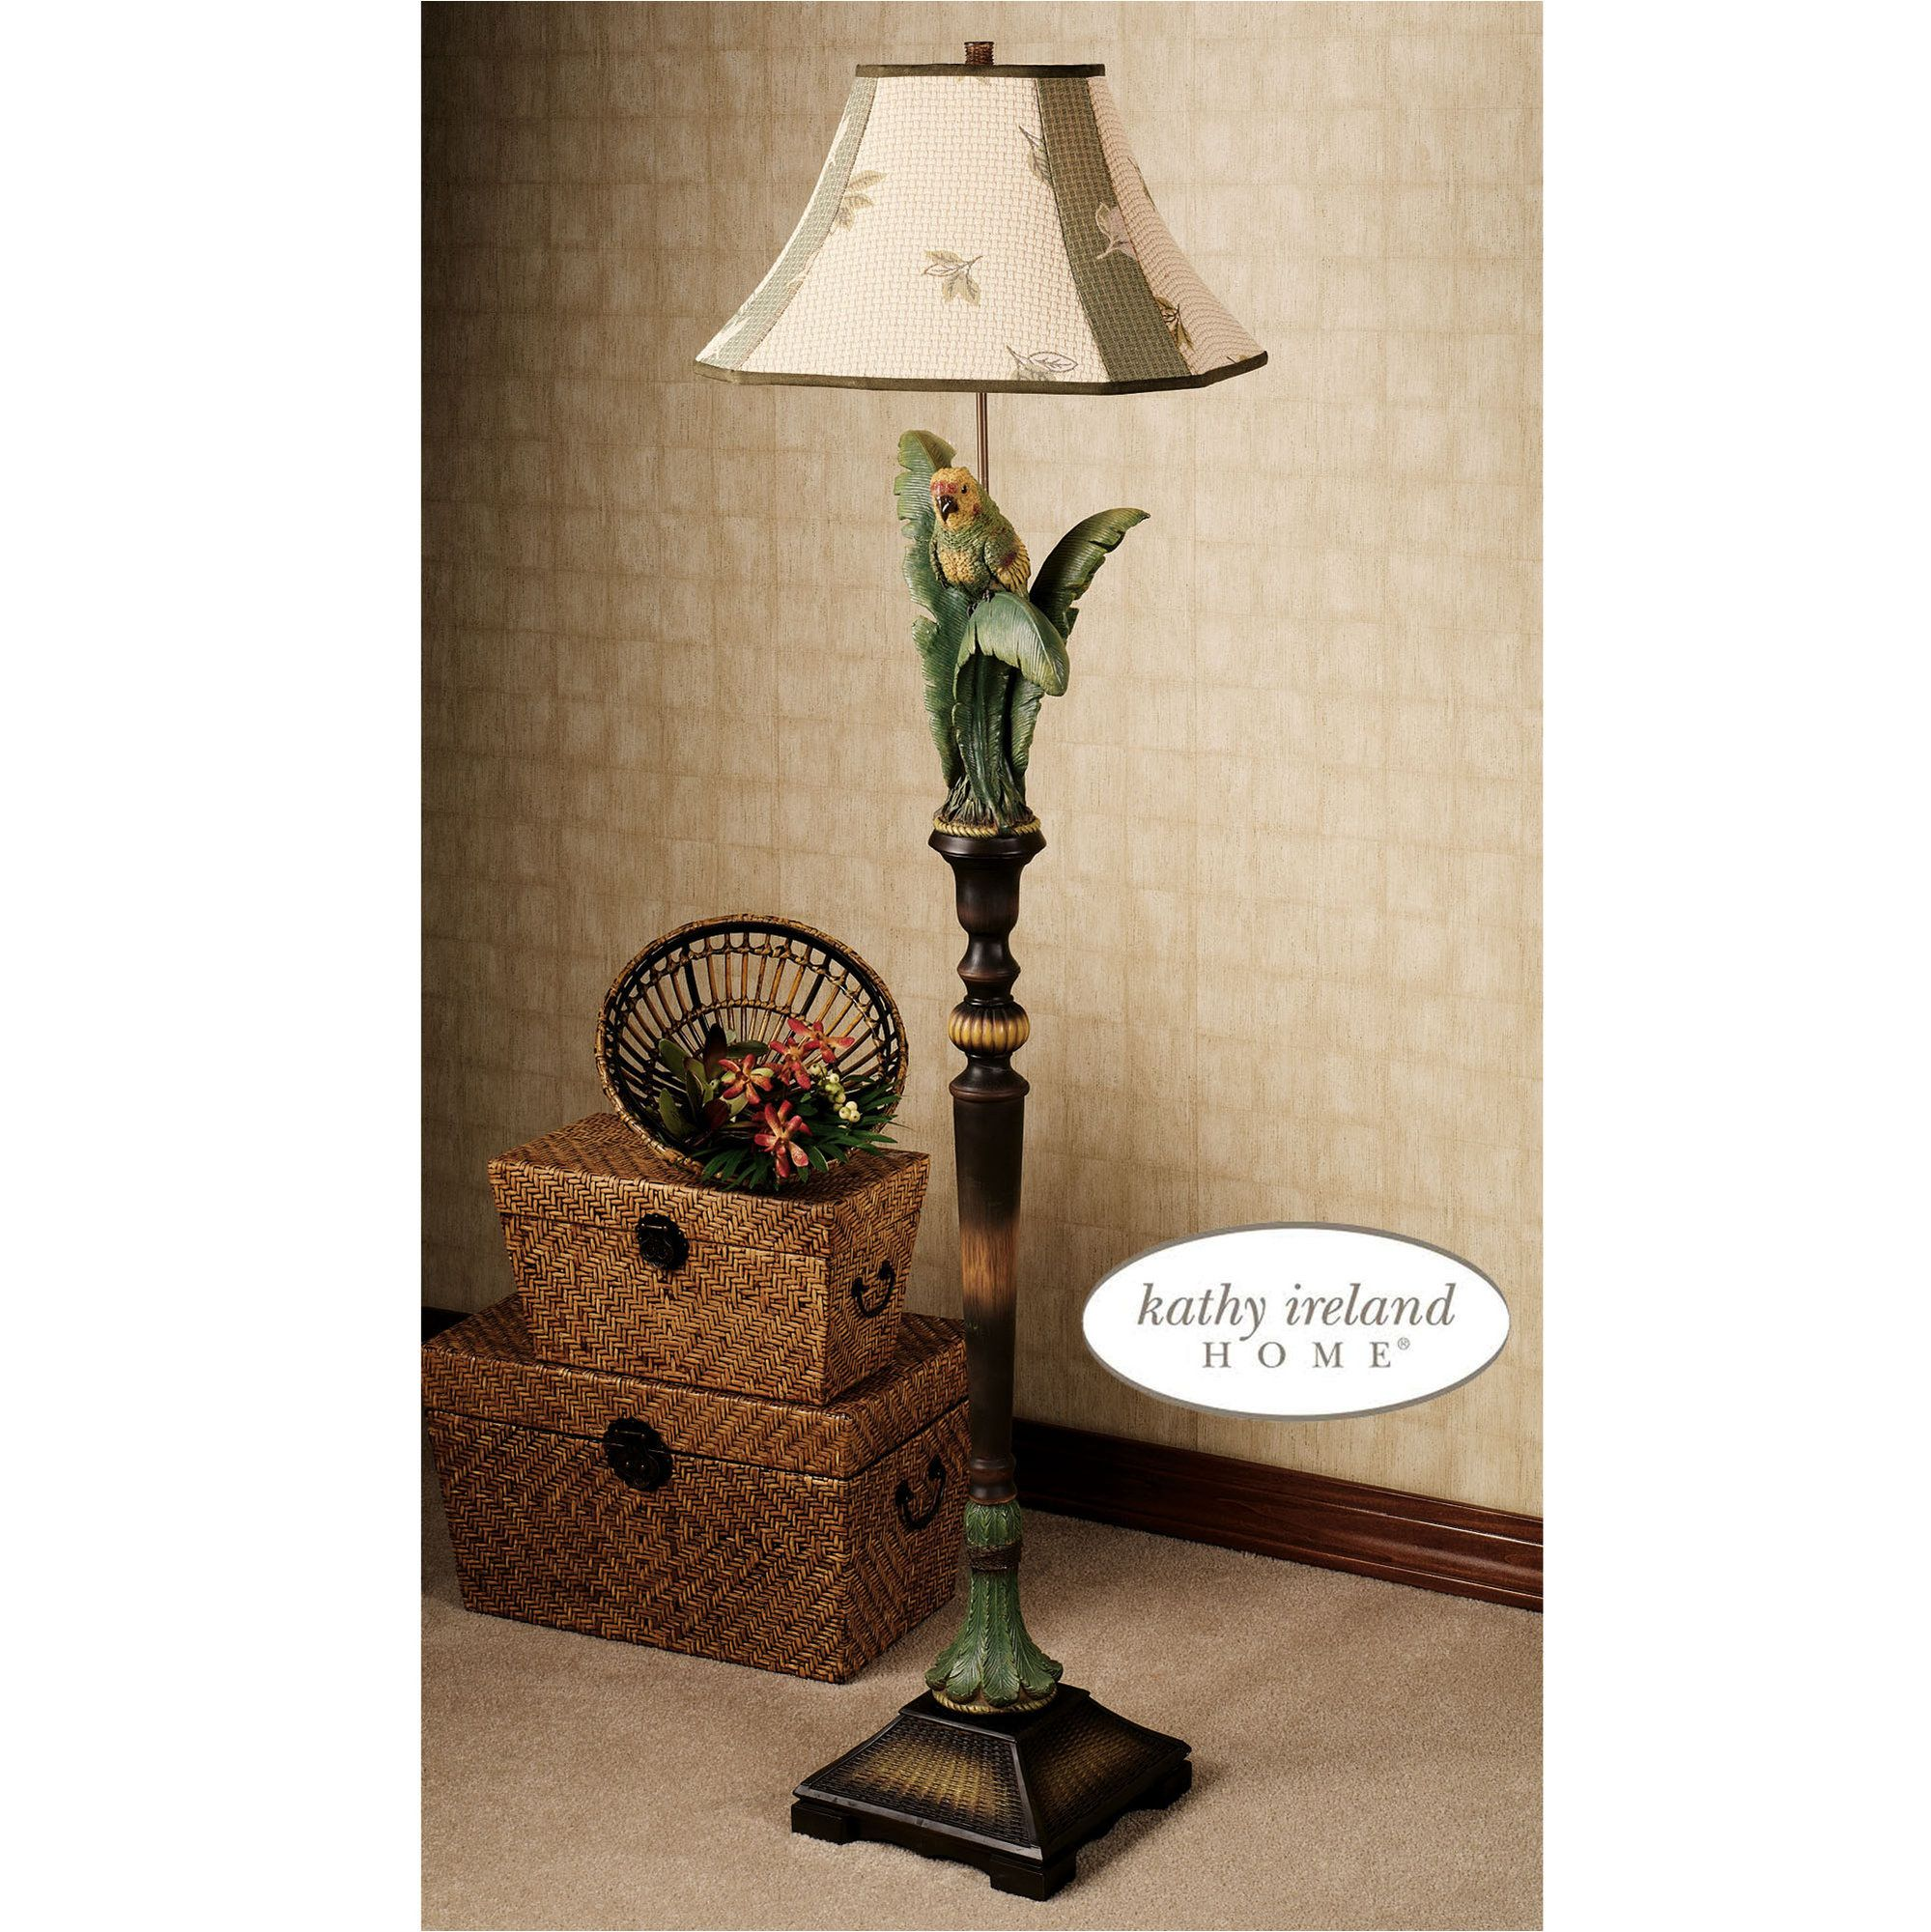 For a tropical feel. Tropical Parrot Floor Lamp | Home sweet home ...